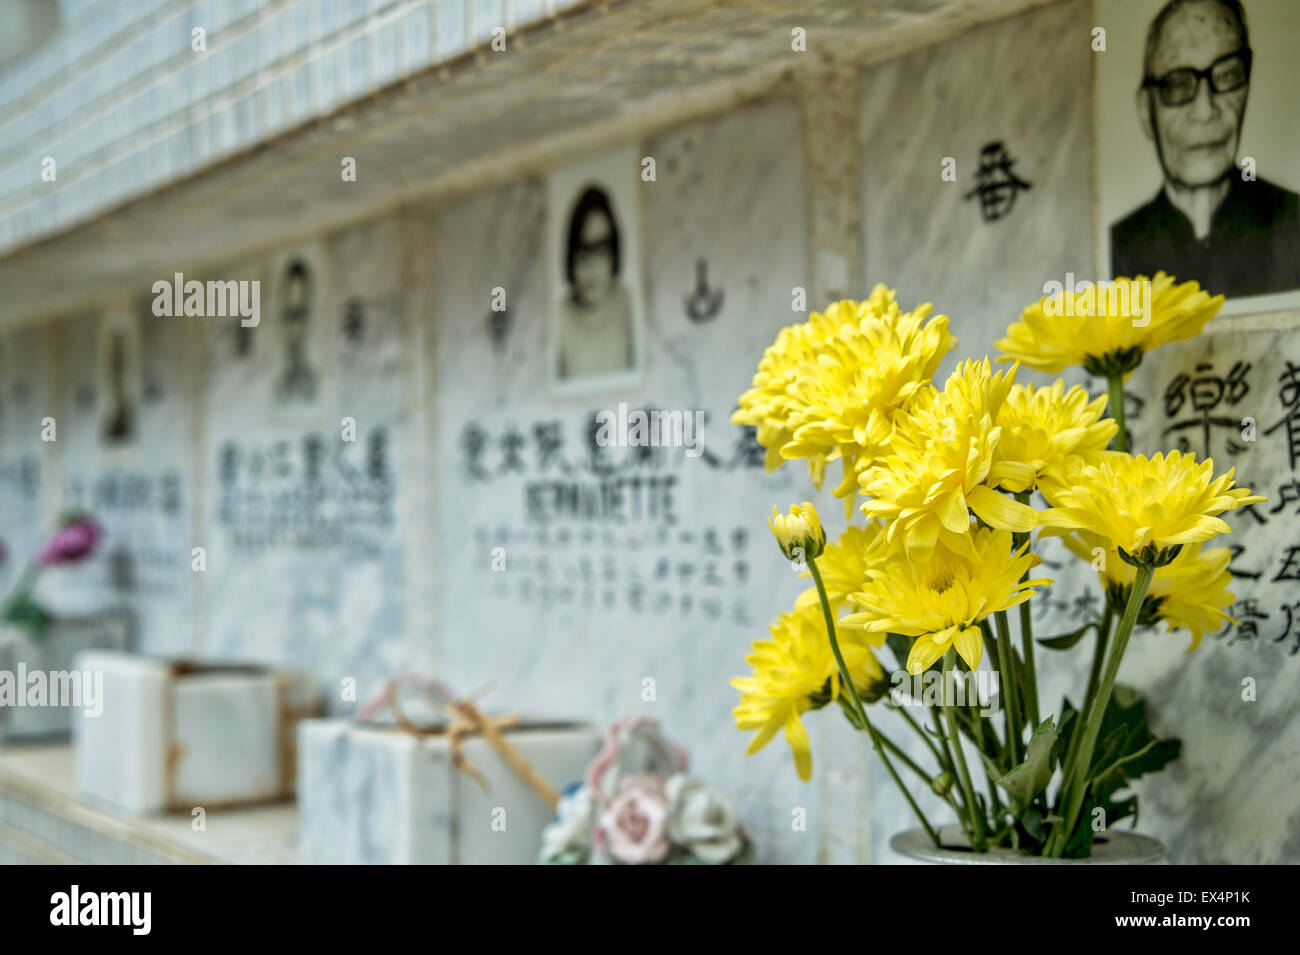 Ossarium at St. Michael's Catholic Cemetery in Hong Kong ossuarium, ossuary - Stock Image